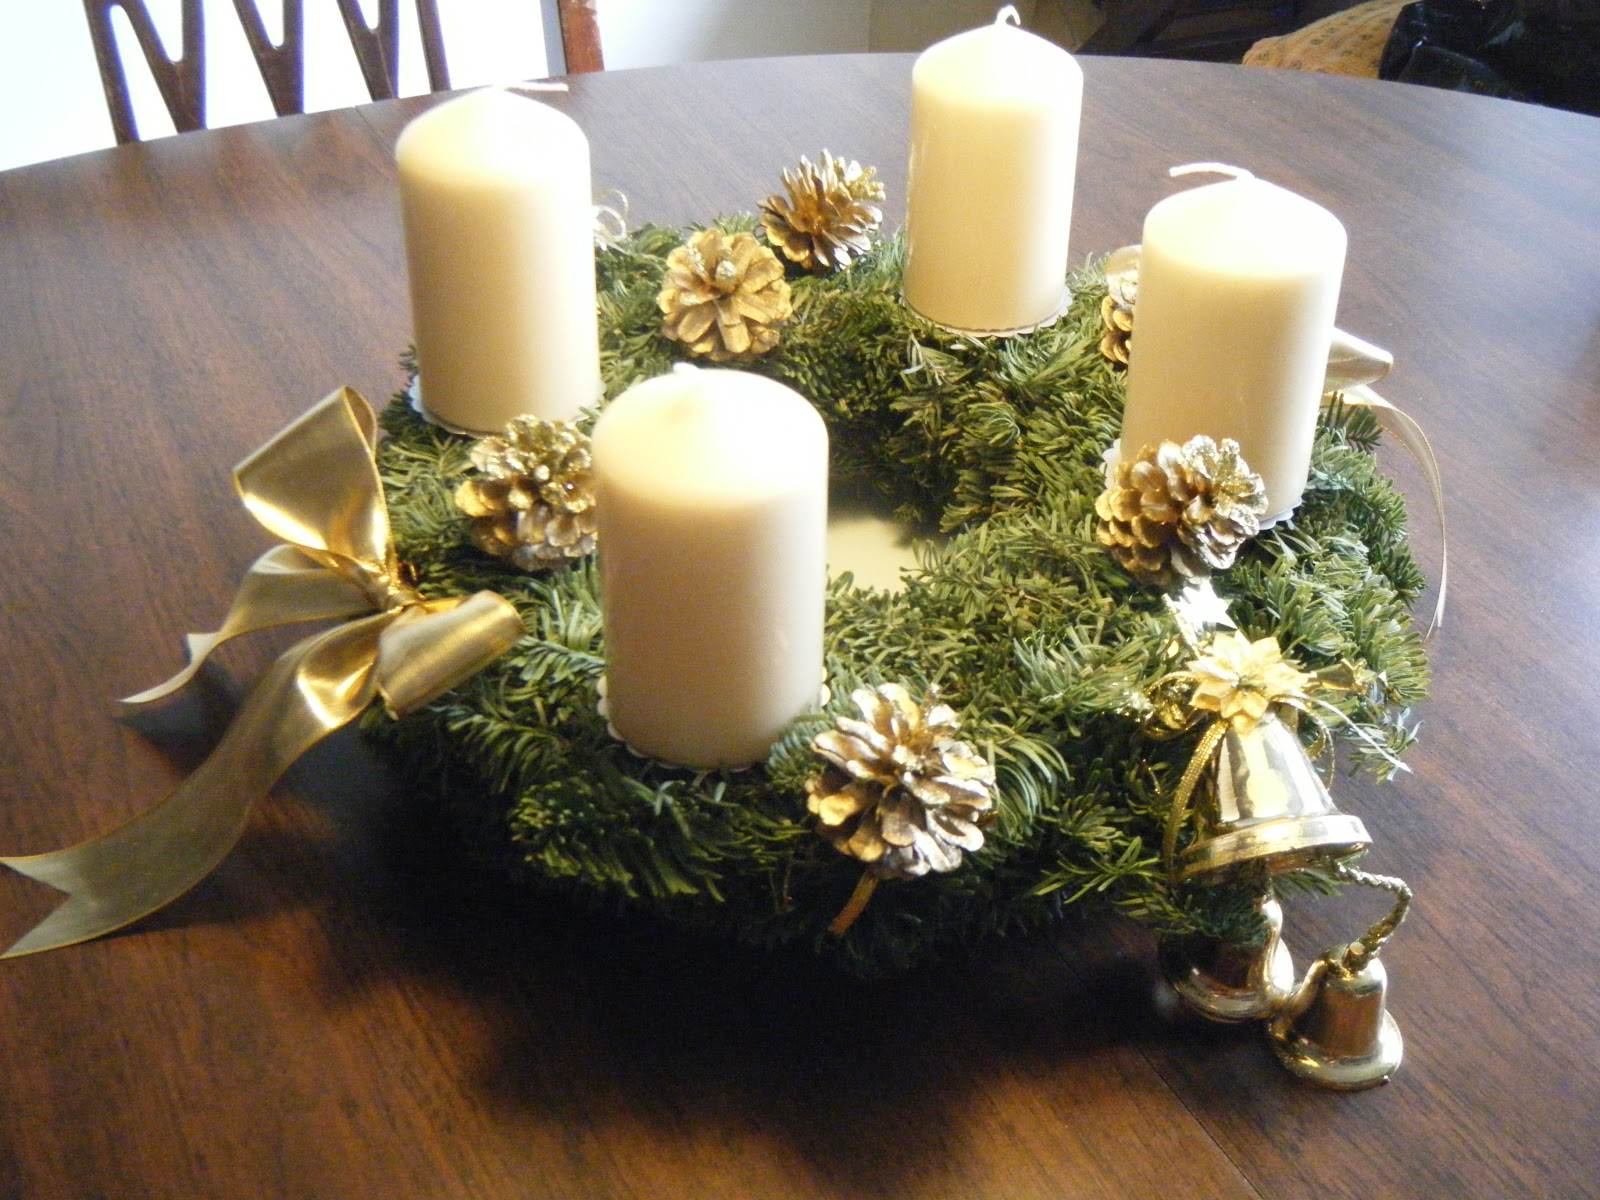 diy advent wreath. Black Bedroom Furniture Sets. Home Design Ideas